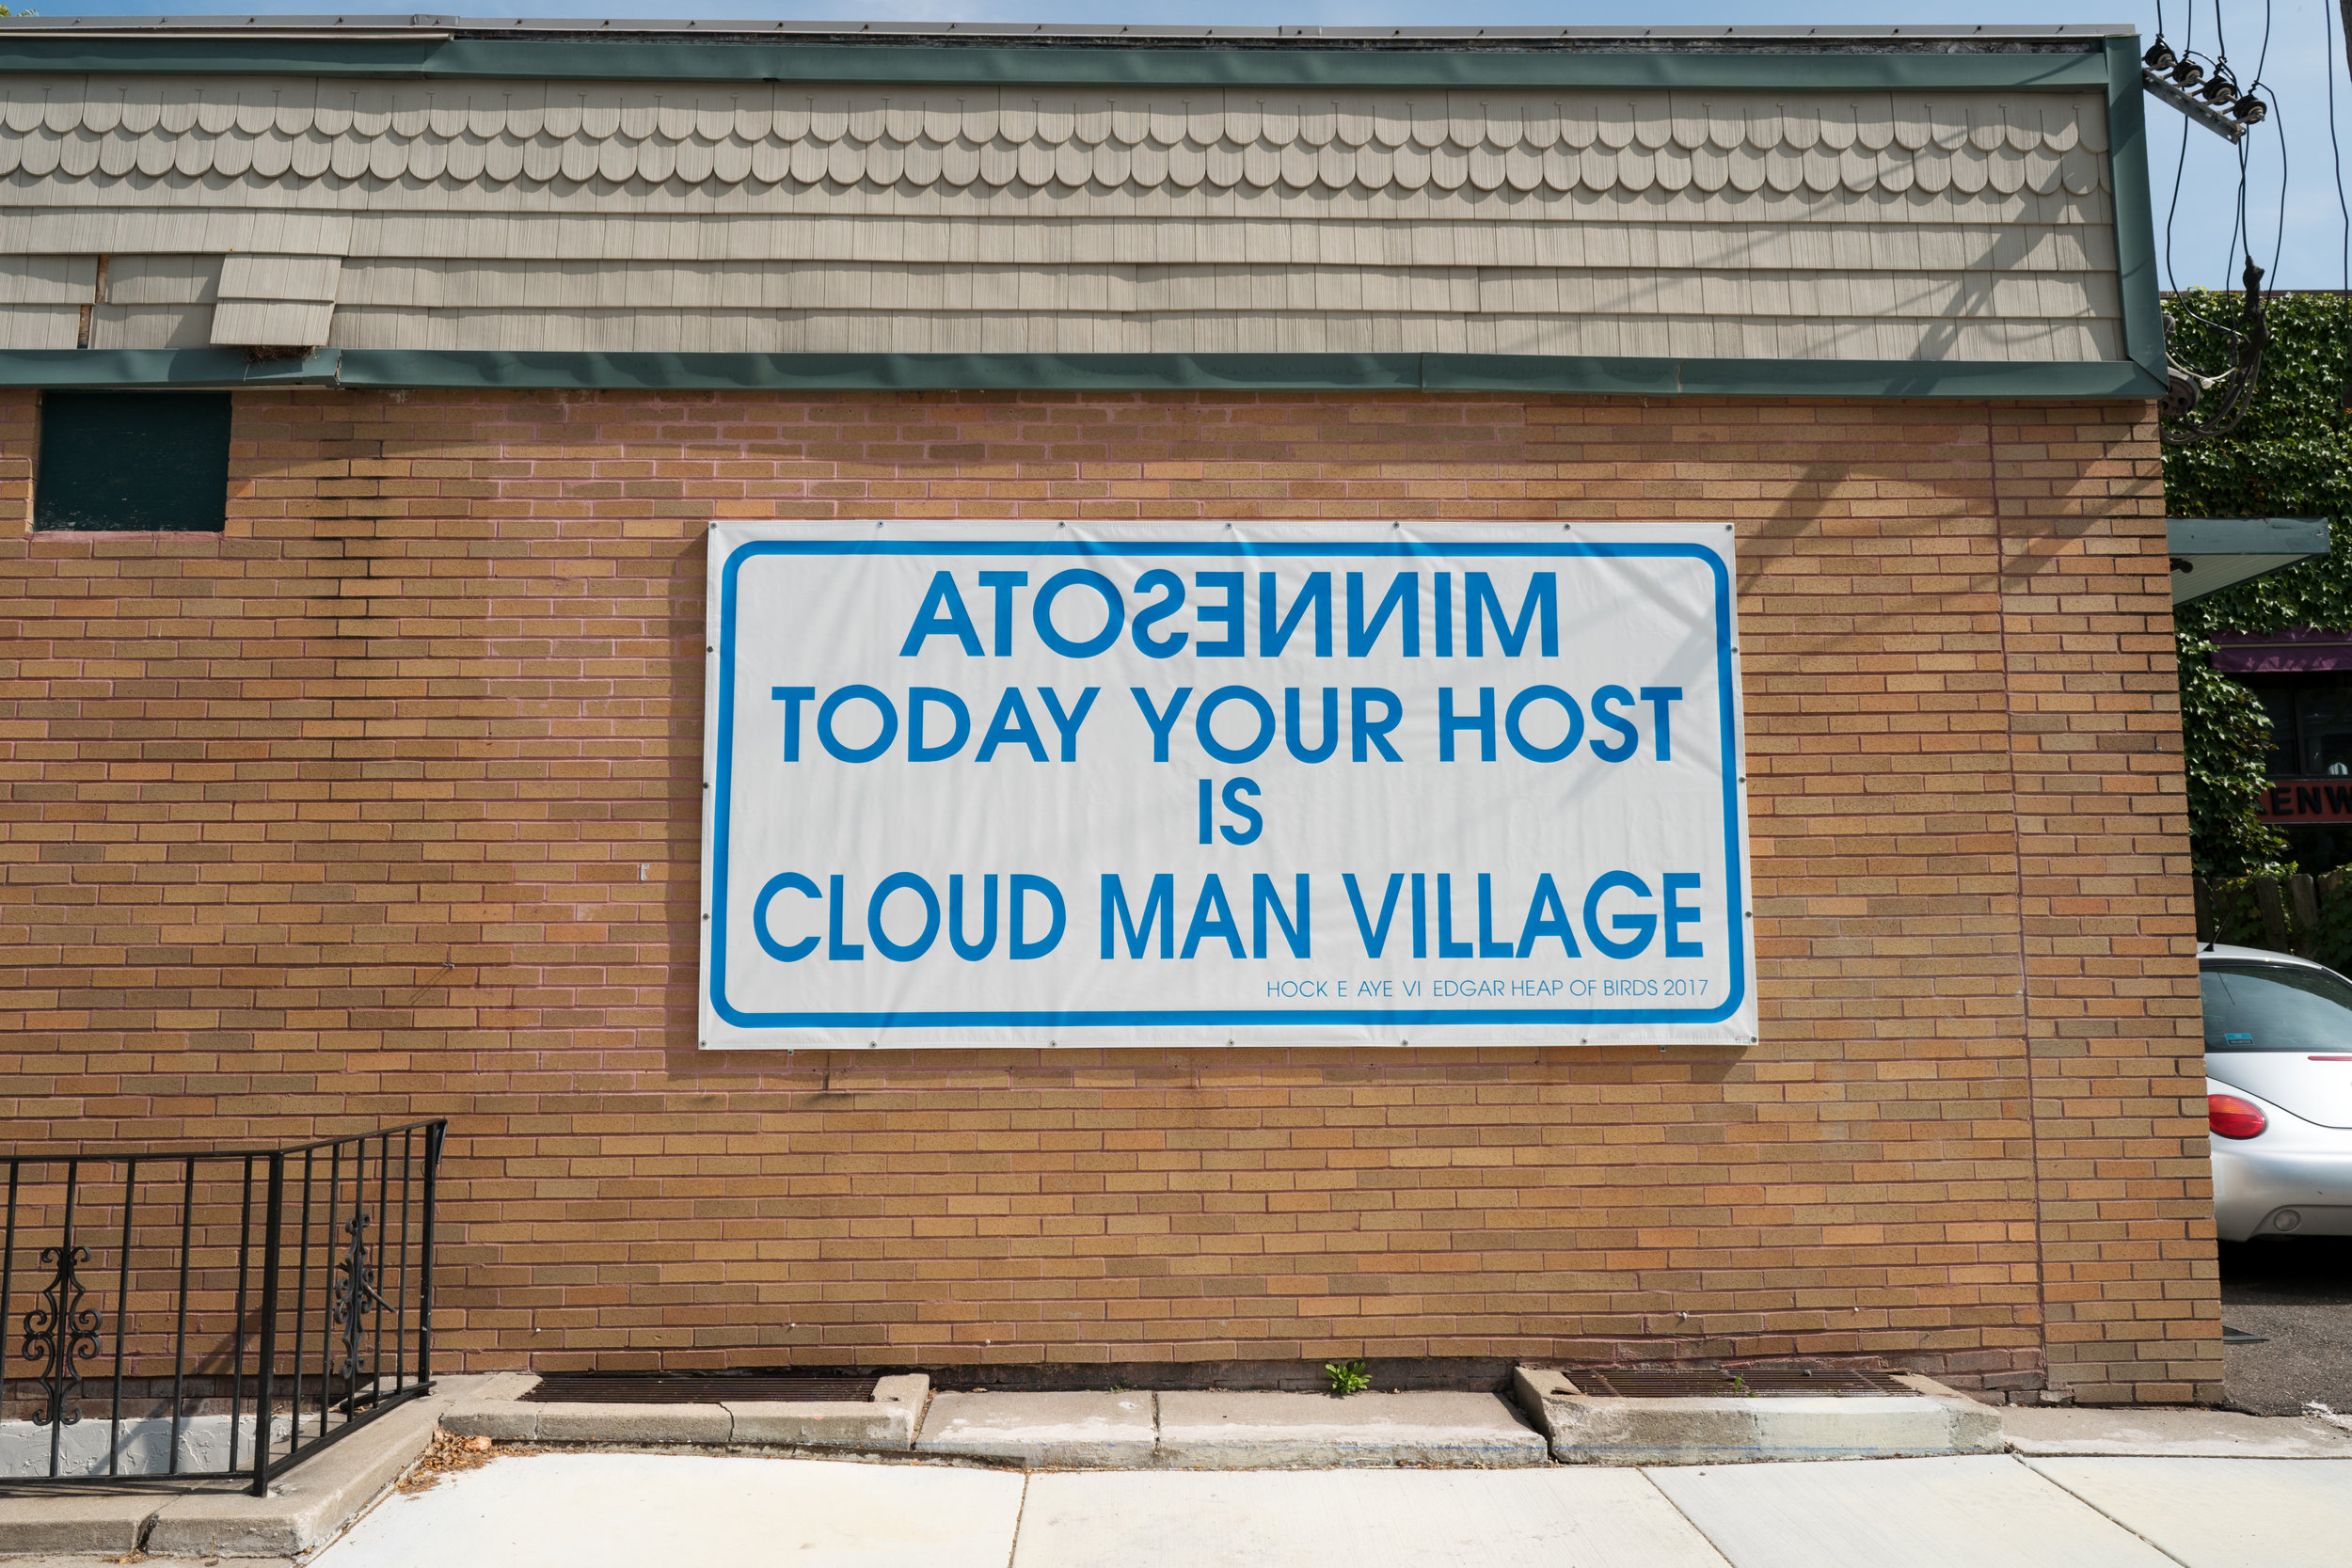 Minnesota Today Your Host Is Cloud Man Village by Edgar Heap of Birds at Bockley Gallery, MN